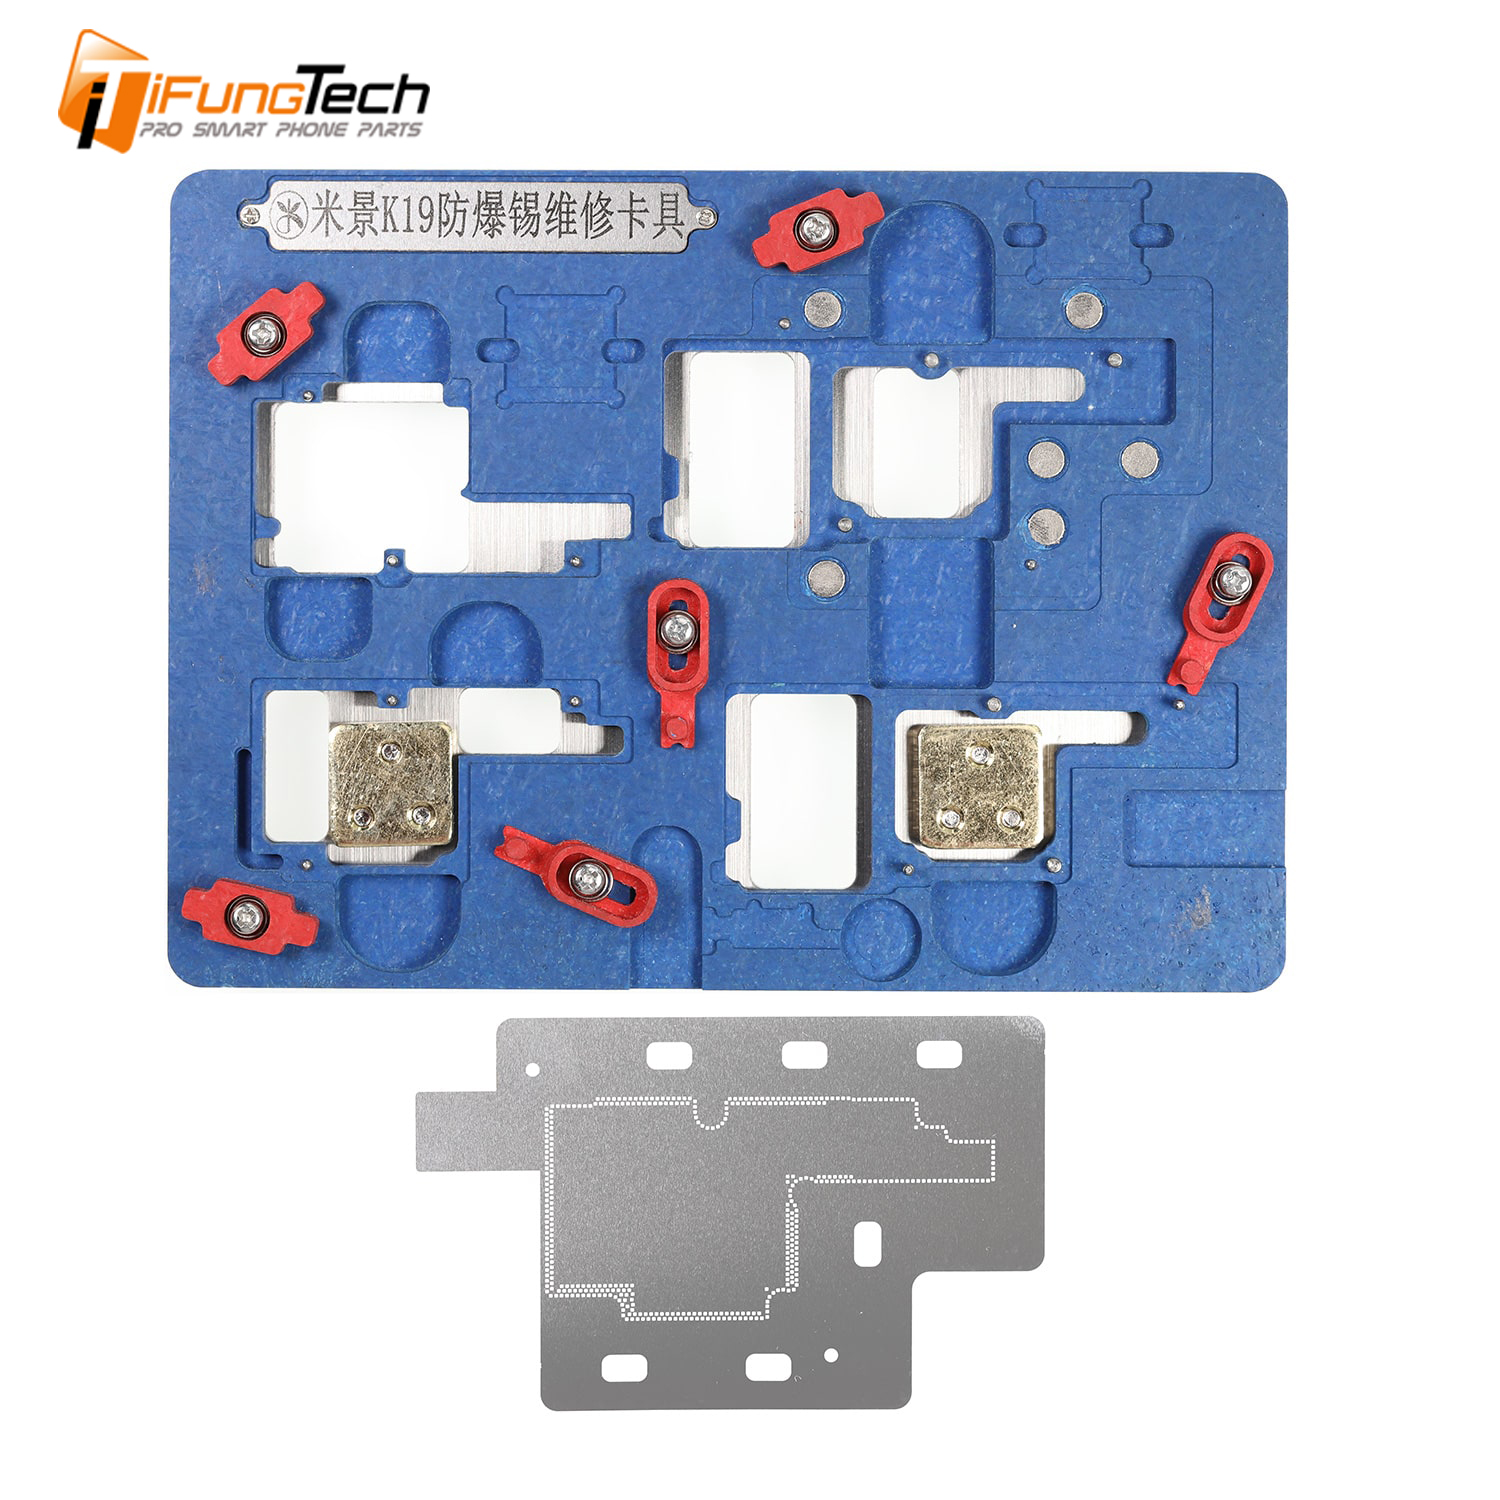 MJ K19 Motherboard PCB Holder Fixture Circuit Board PCB Holder for iPhone X cellphone repair Tool